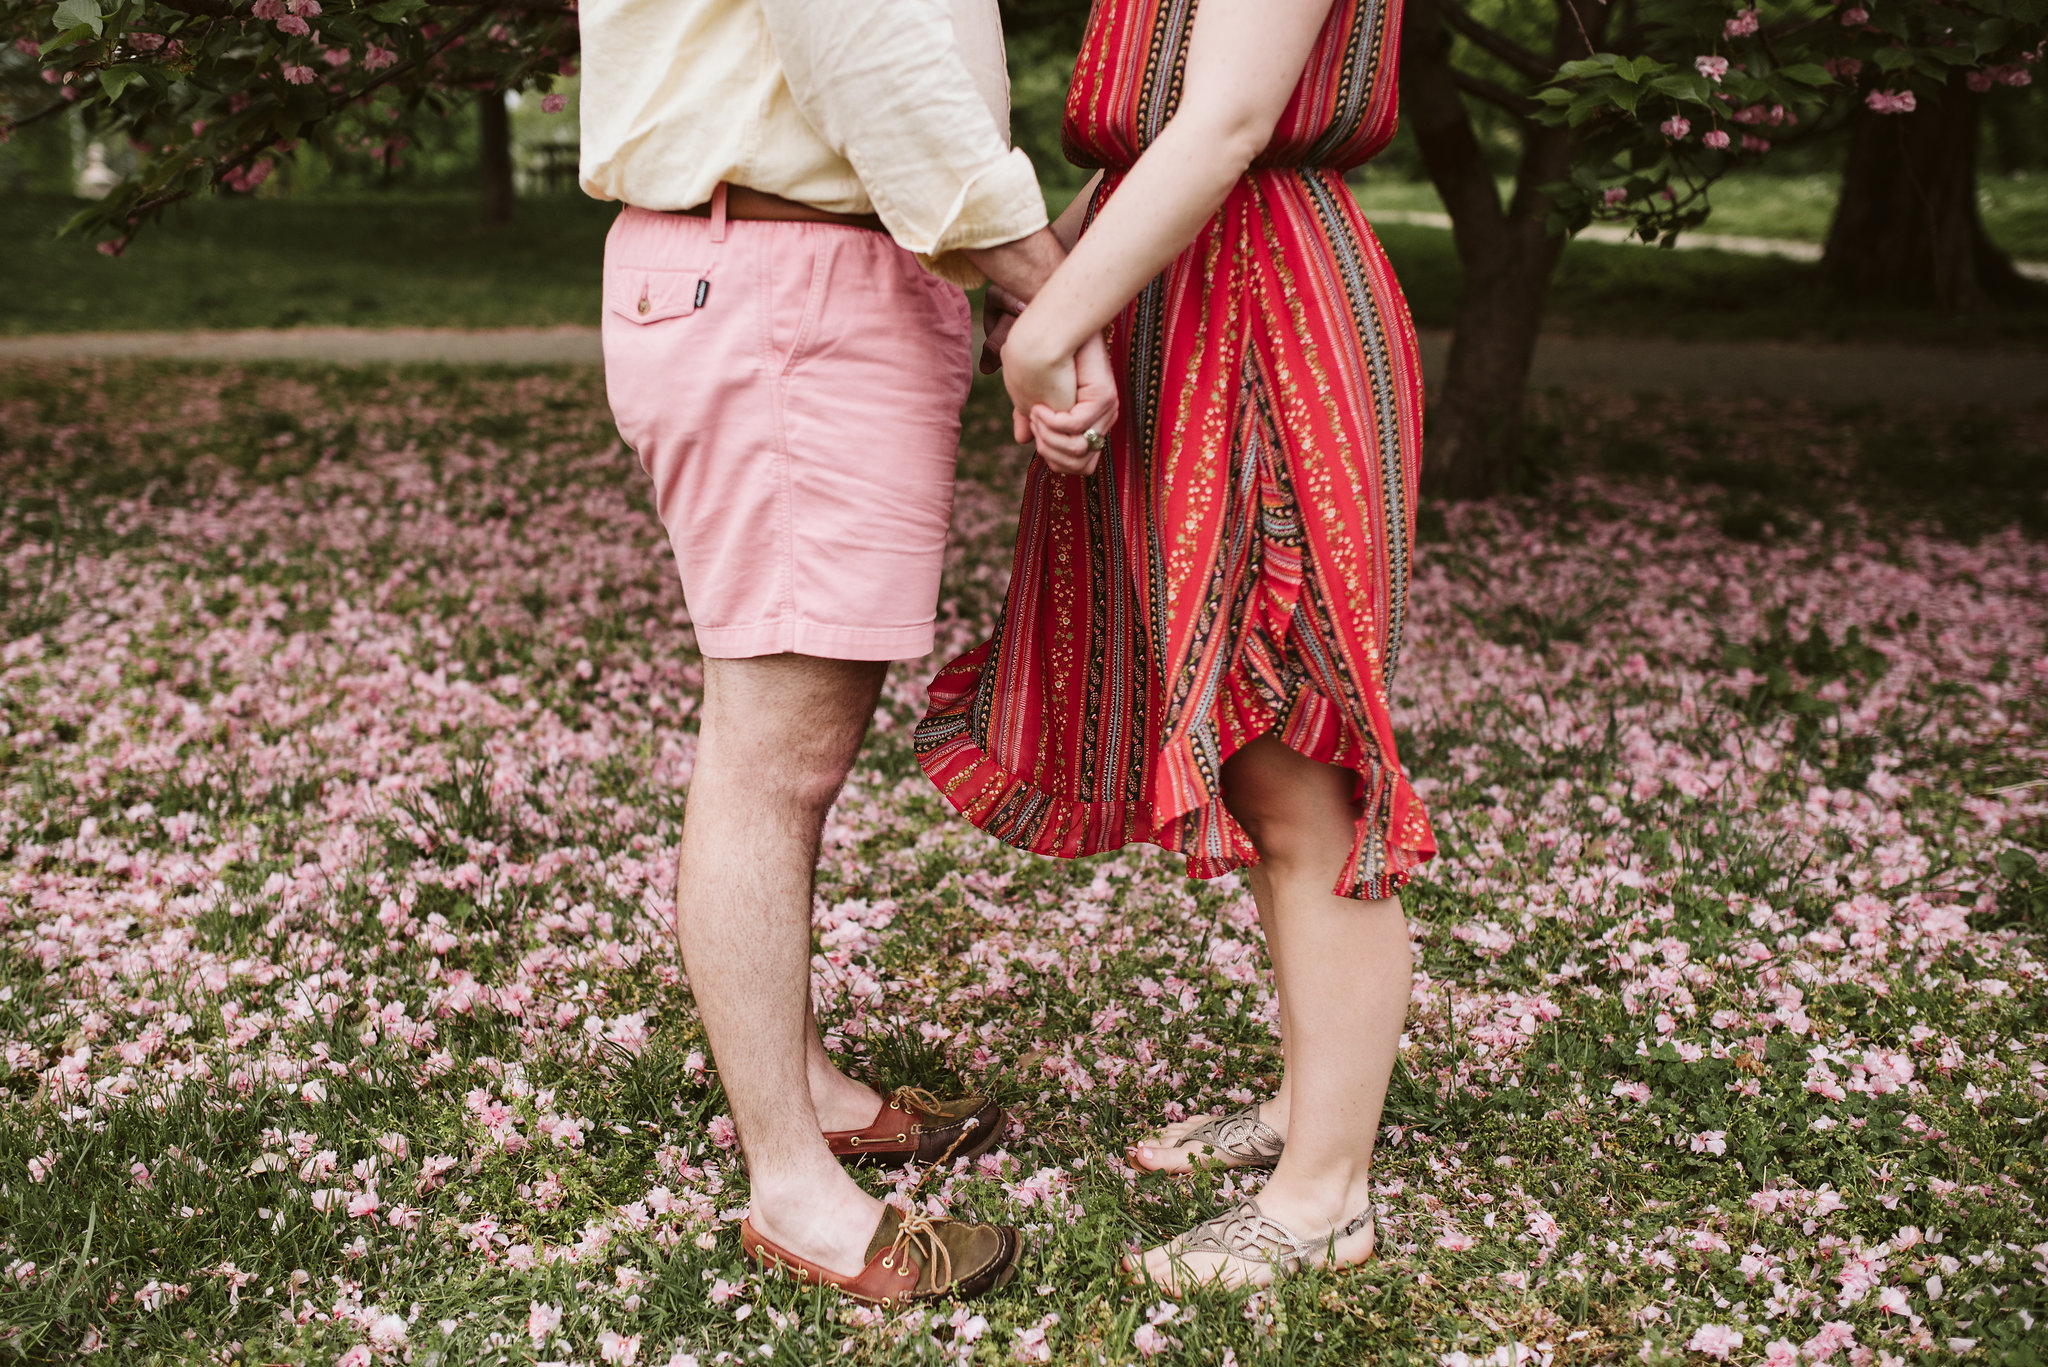 Engagement Photos, Patterson Park, Baltimore, Maryland Wedding Photographer, Casual, Fun, Nature, Sweet Photo of Bride and Groom Holding Hands Surrounded by Pink Flowers, Spring